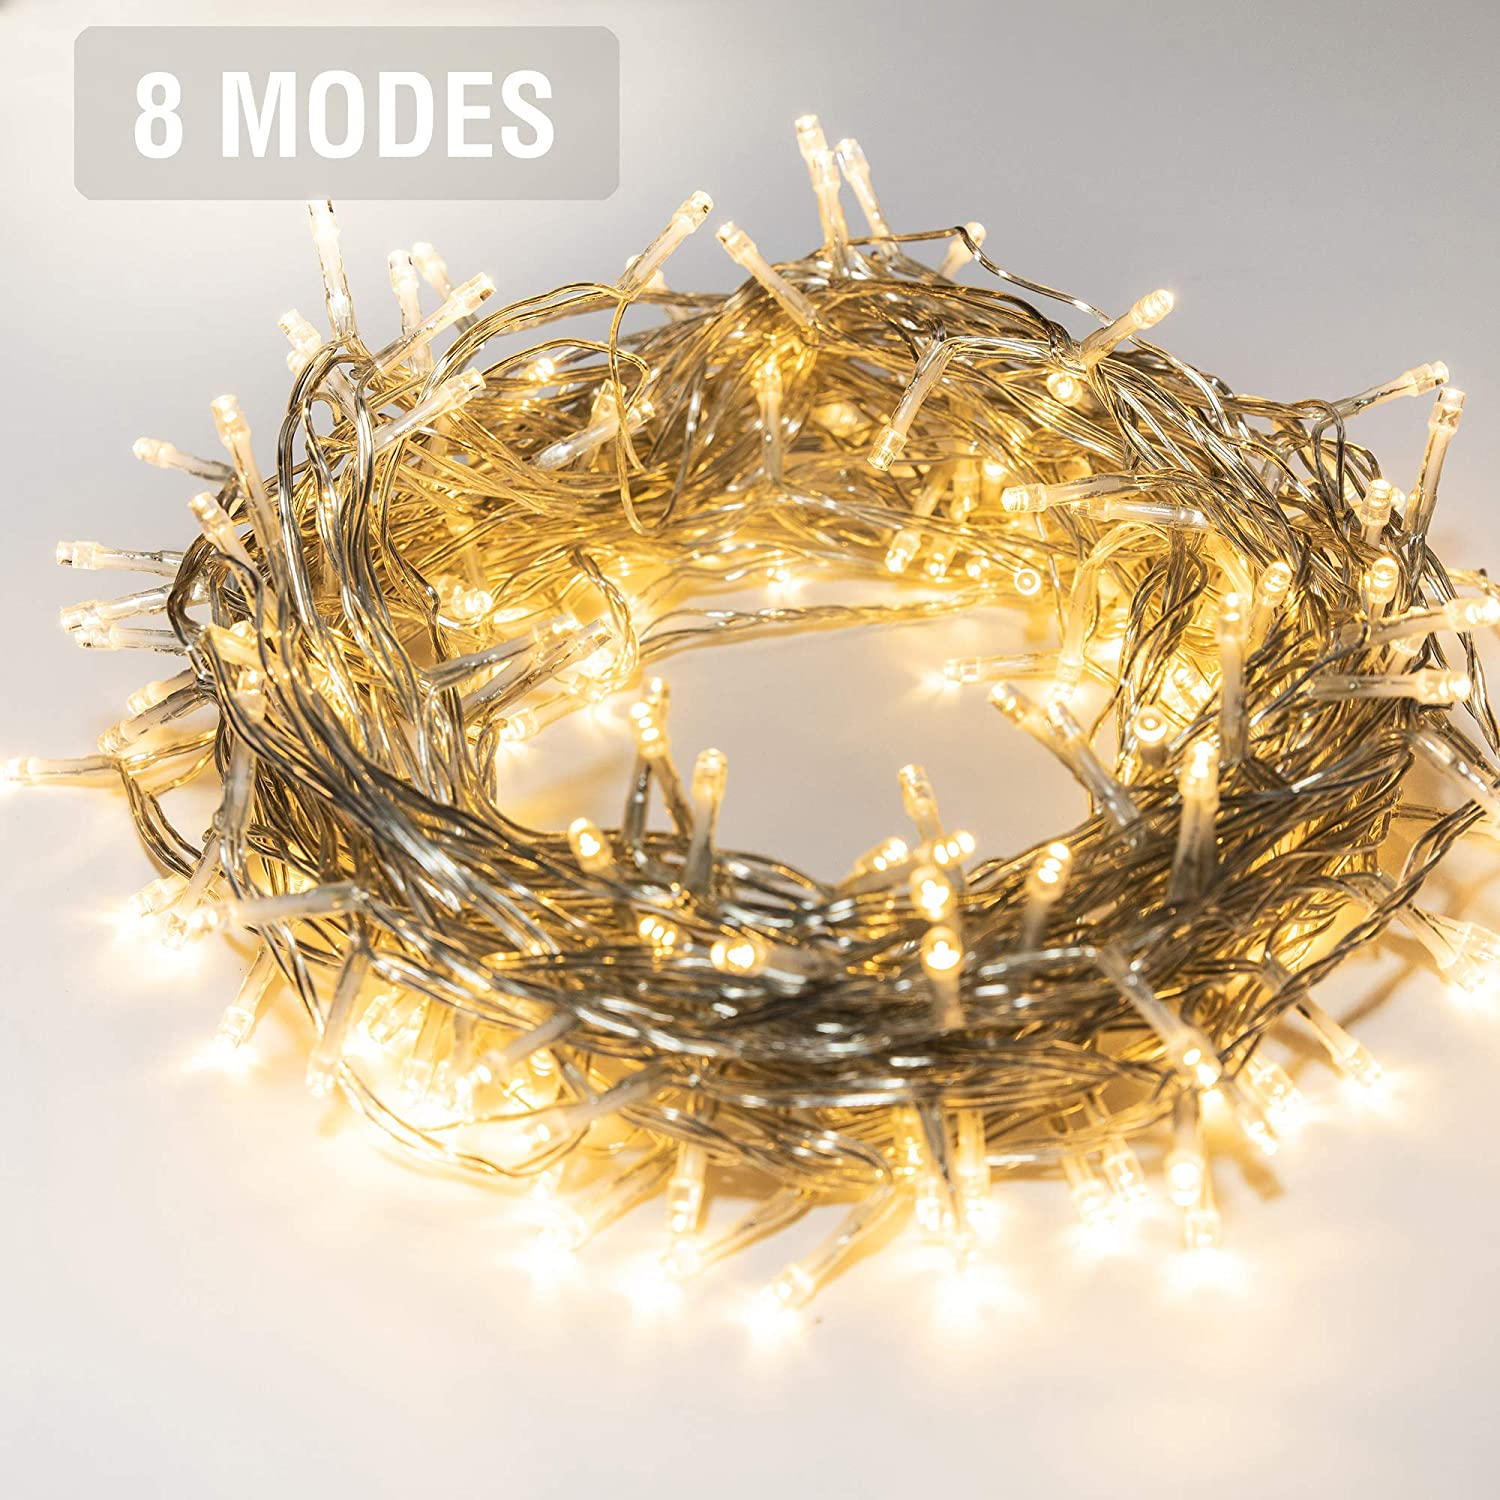 Kozyard Delite Indoor/Outdoor String Lights for Christmas, Wedding, Party, Room Decoration, UL:588 Approved (100LED, Warm White)